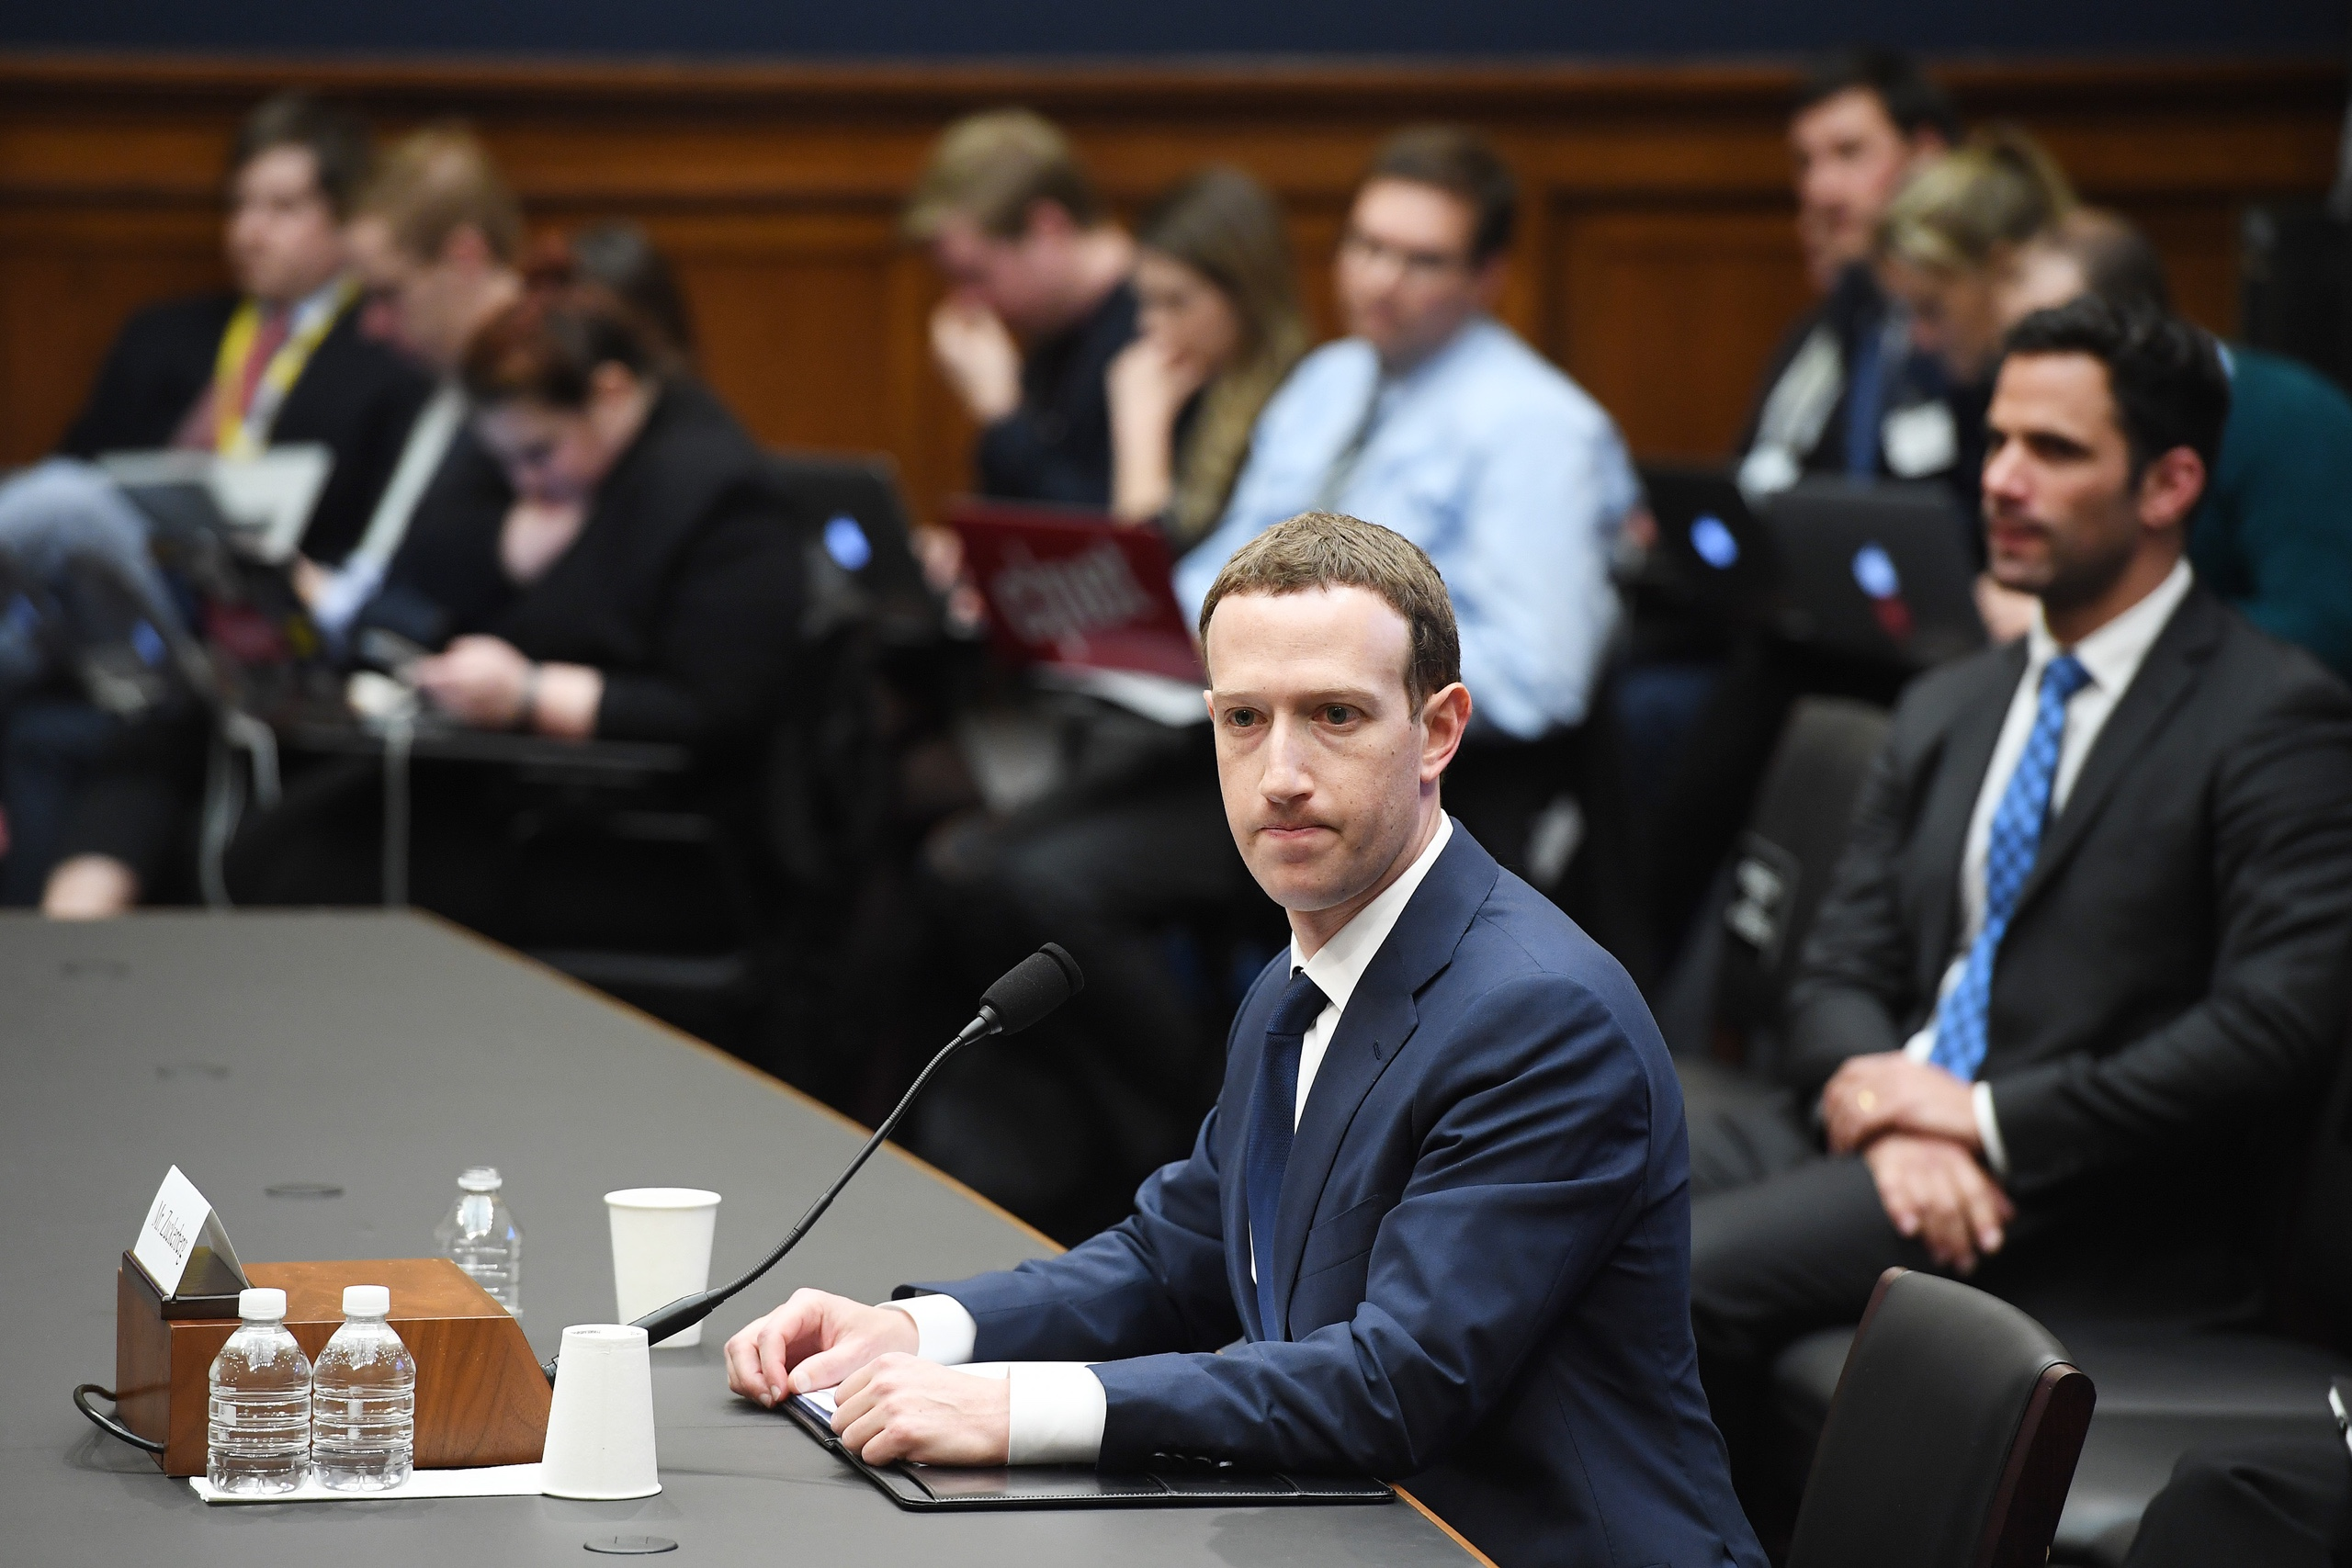 creepy mark zuckerberg is creepy